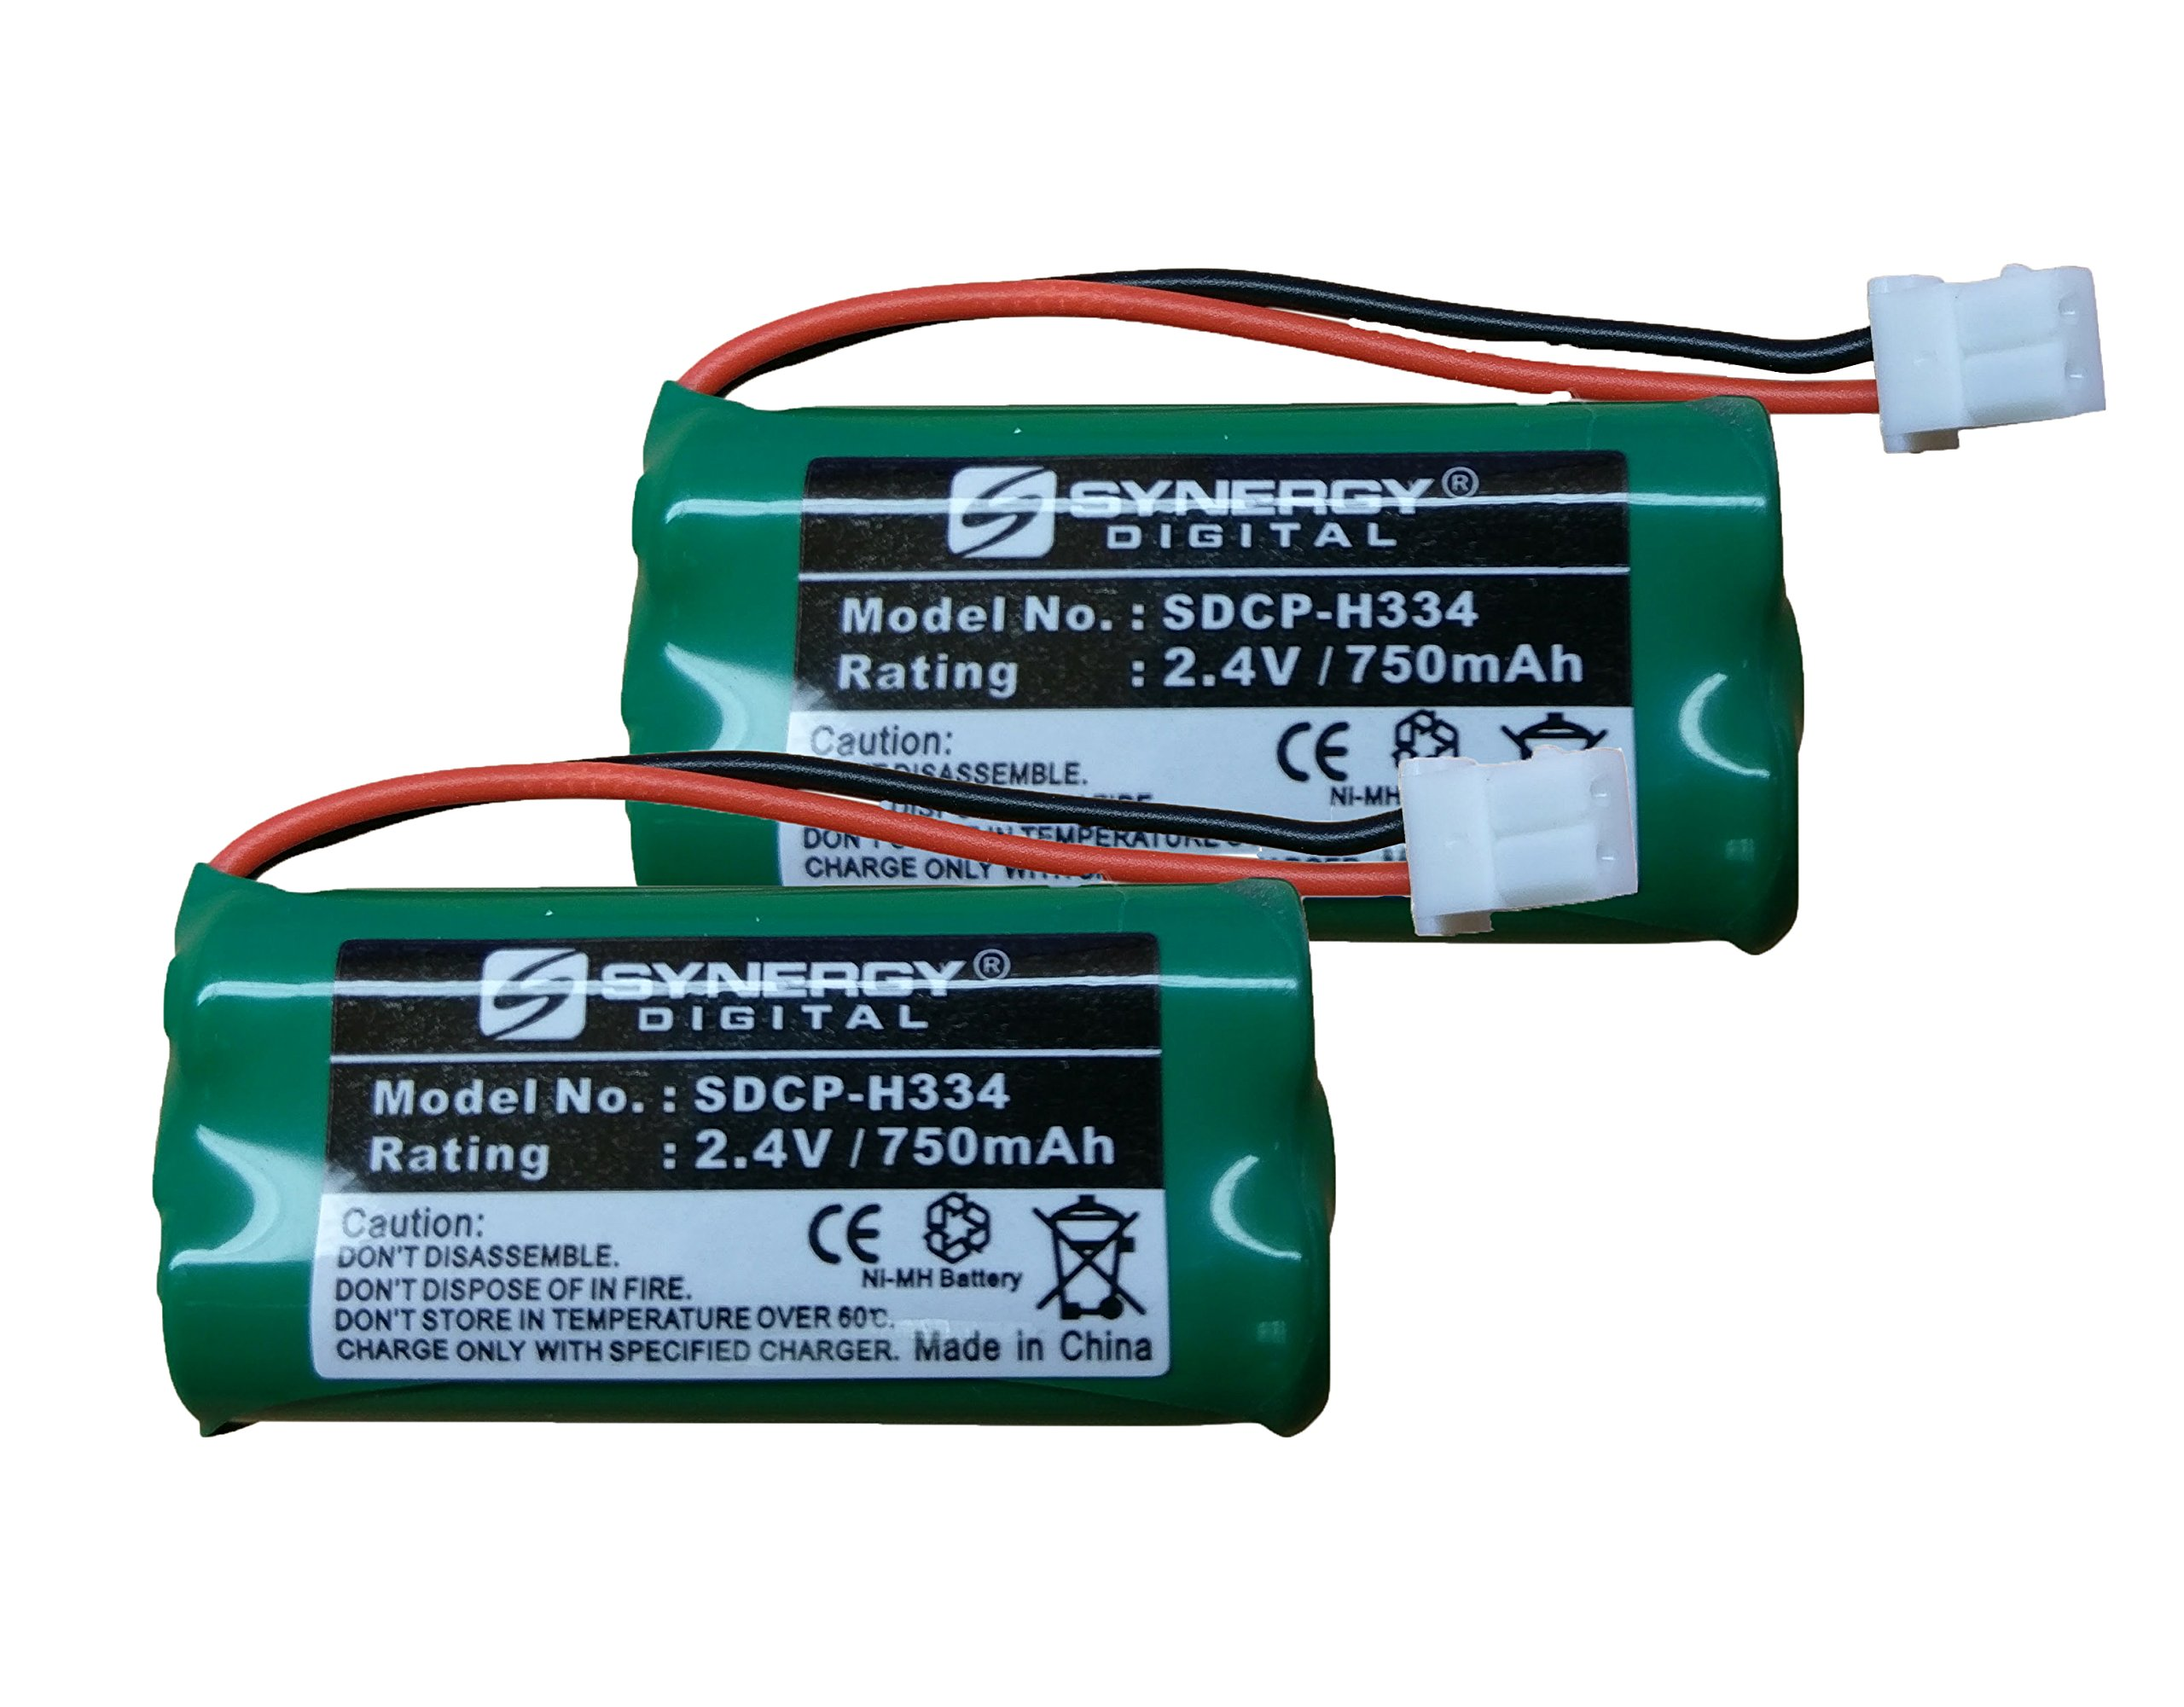 Vtech IS7121-22 Cordless Phone Battery Combo-Pack Includes: 2 x SDCP-H334 Batteries